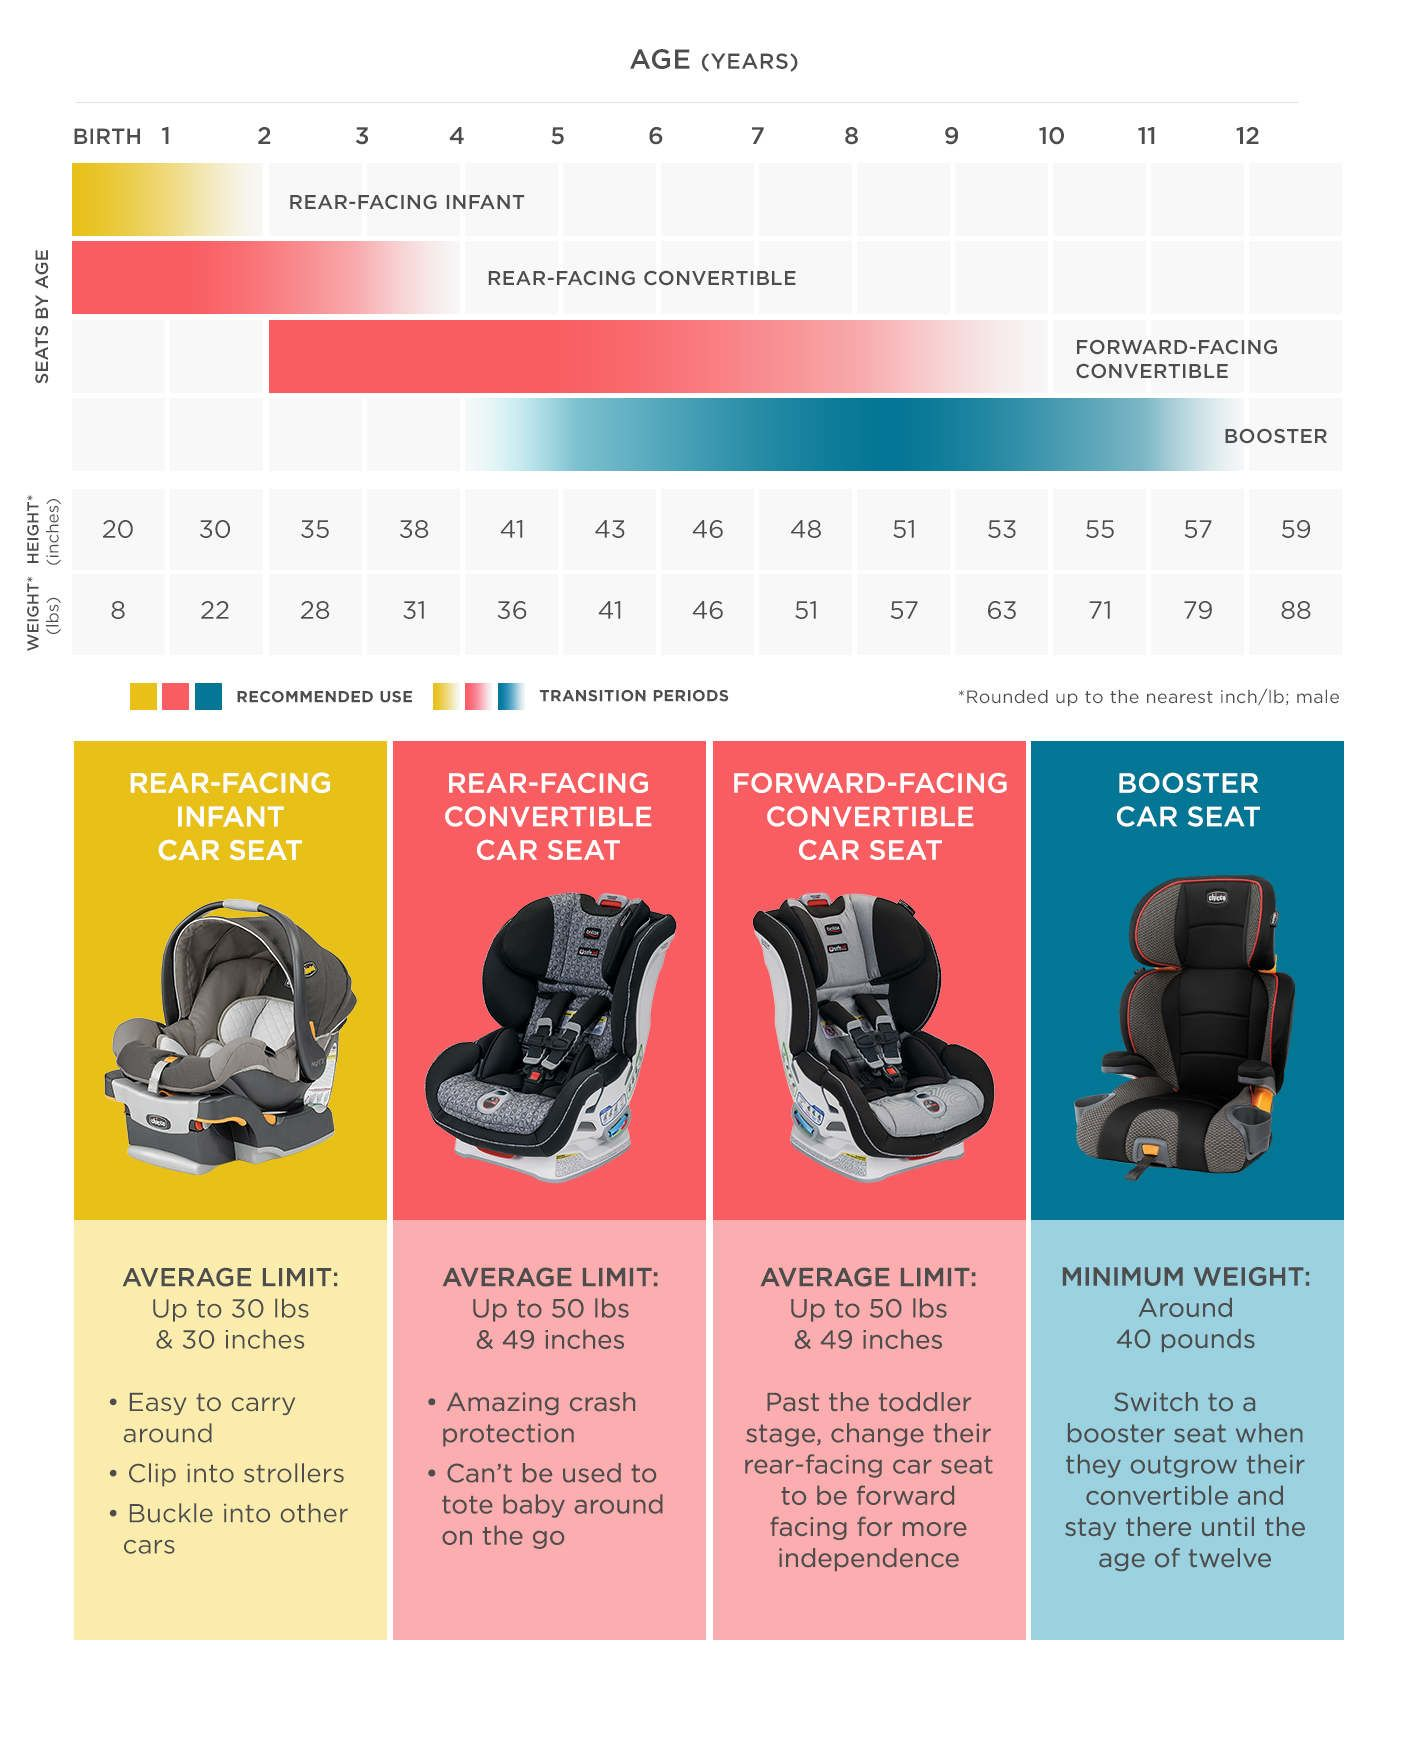 Remarkable How To Choose The Safest Car Seat Car Seats Car Seat Spiritservingveterans Wood Chair Design Ideas Spiritservingveteransorg